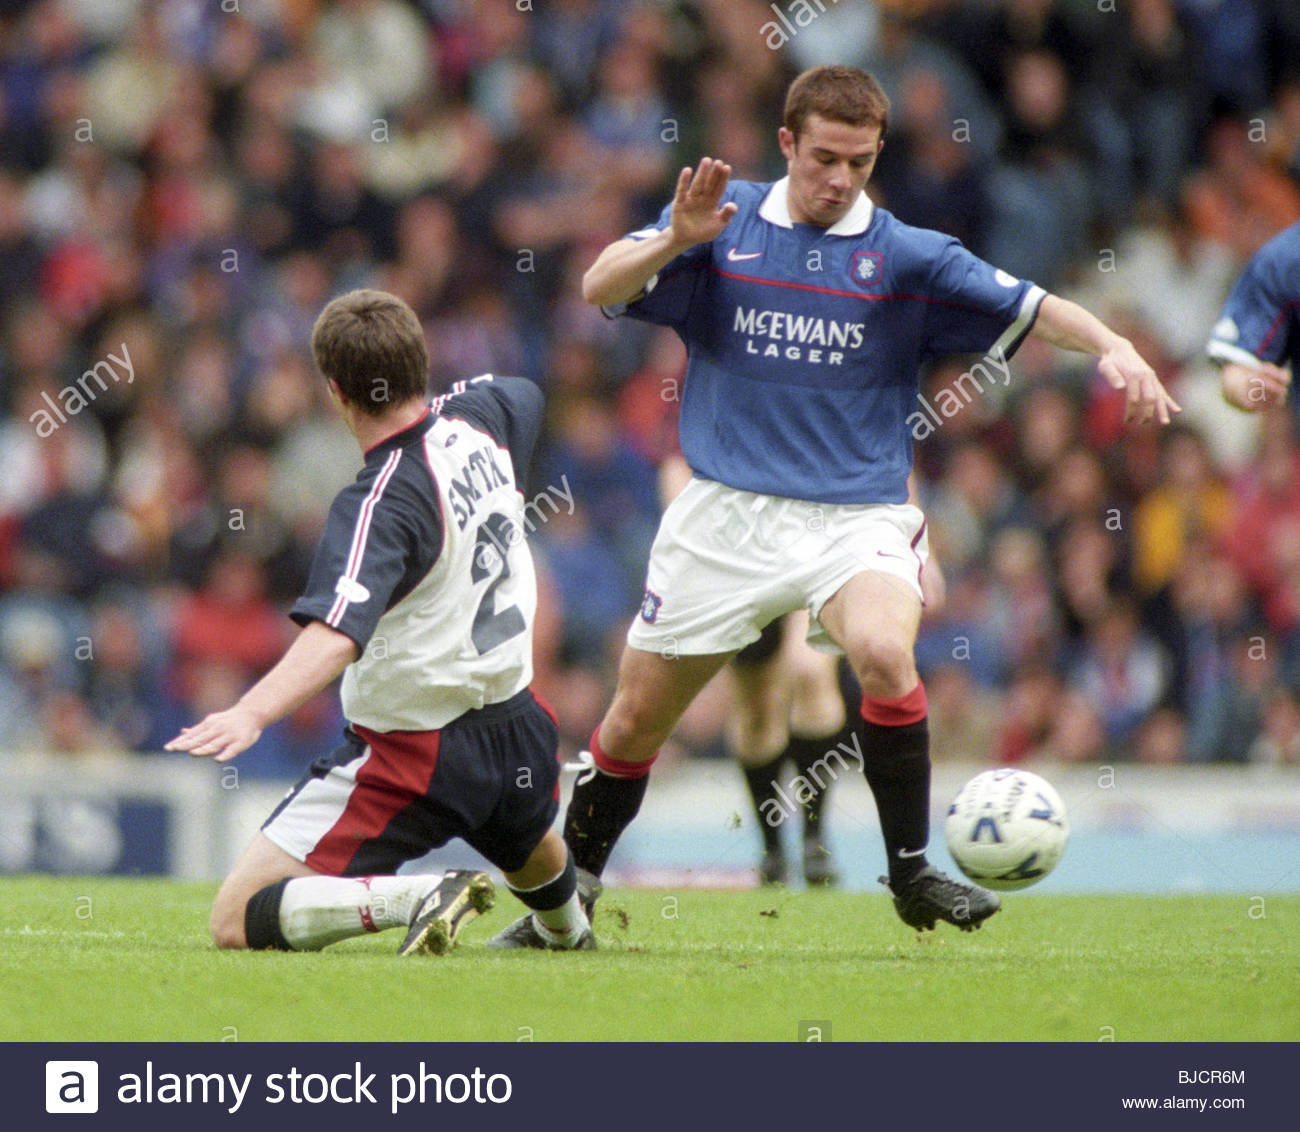 04/10/98 SPL RANGERS v DUNDEE (1-0) IBROX - GLASGOW Rangers midfielder Barry Ferguson (right) is challenged by Barry - Stock Image